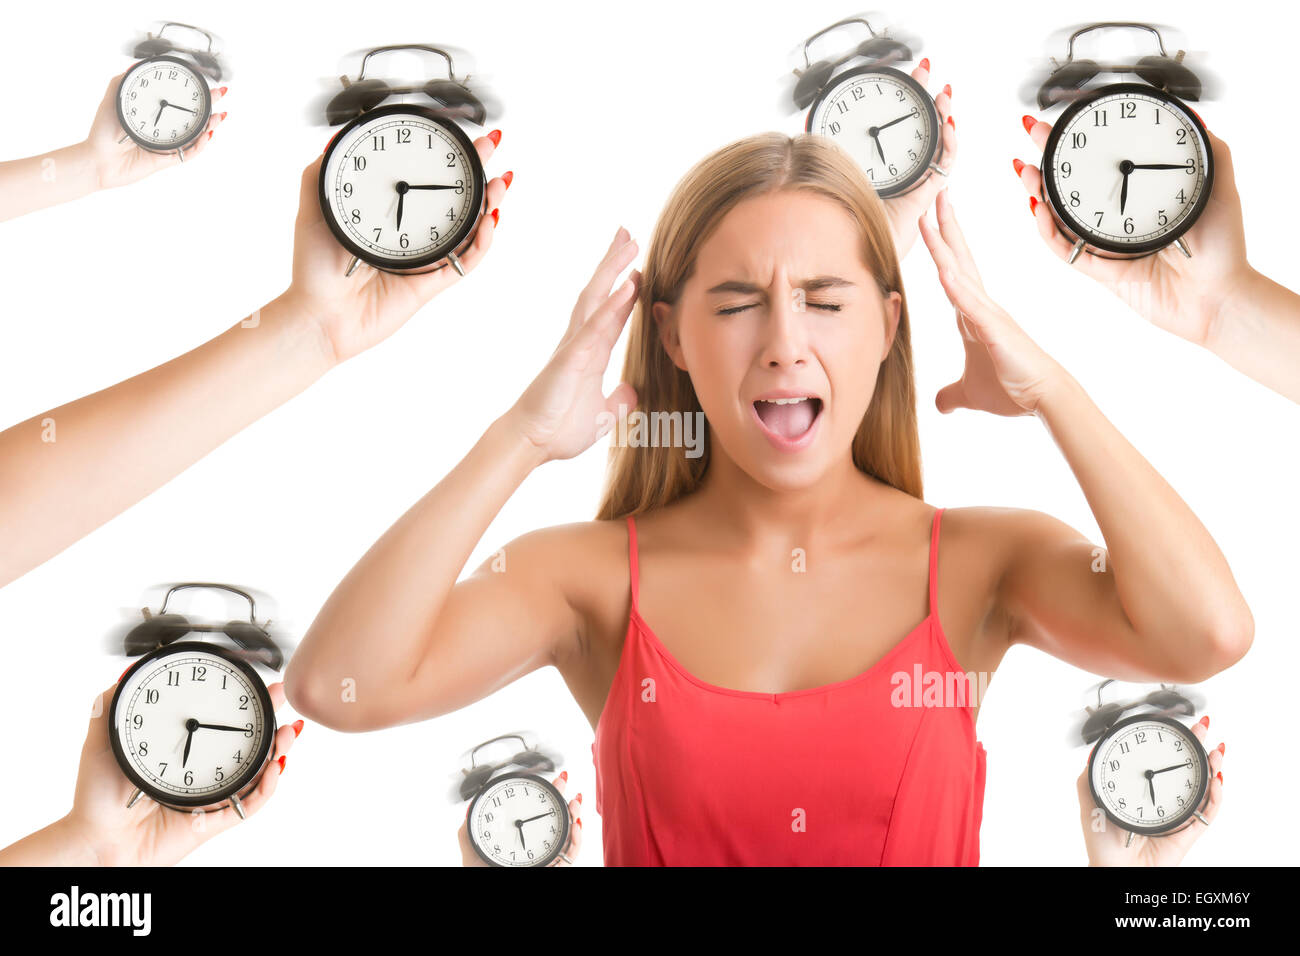 Woman suffering from a nervous breakdown, holding her hands to her head, with alarm clocks around her, isolated - Stock Image